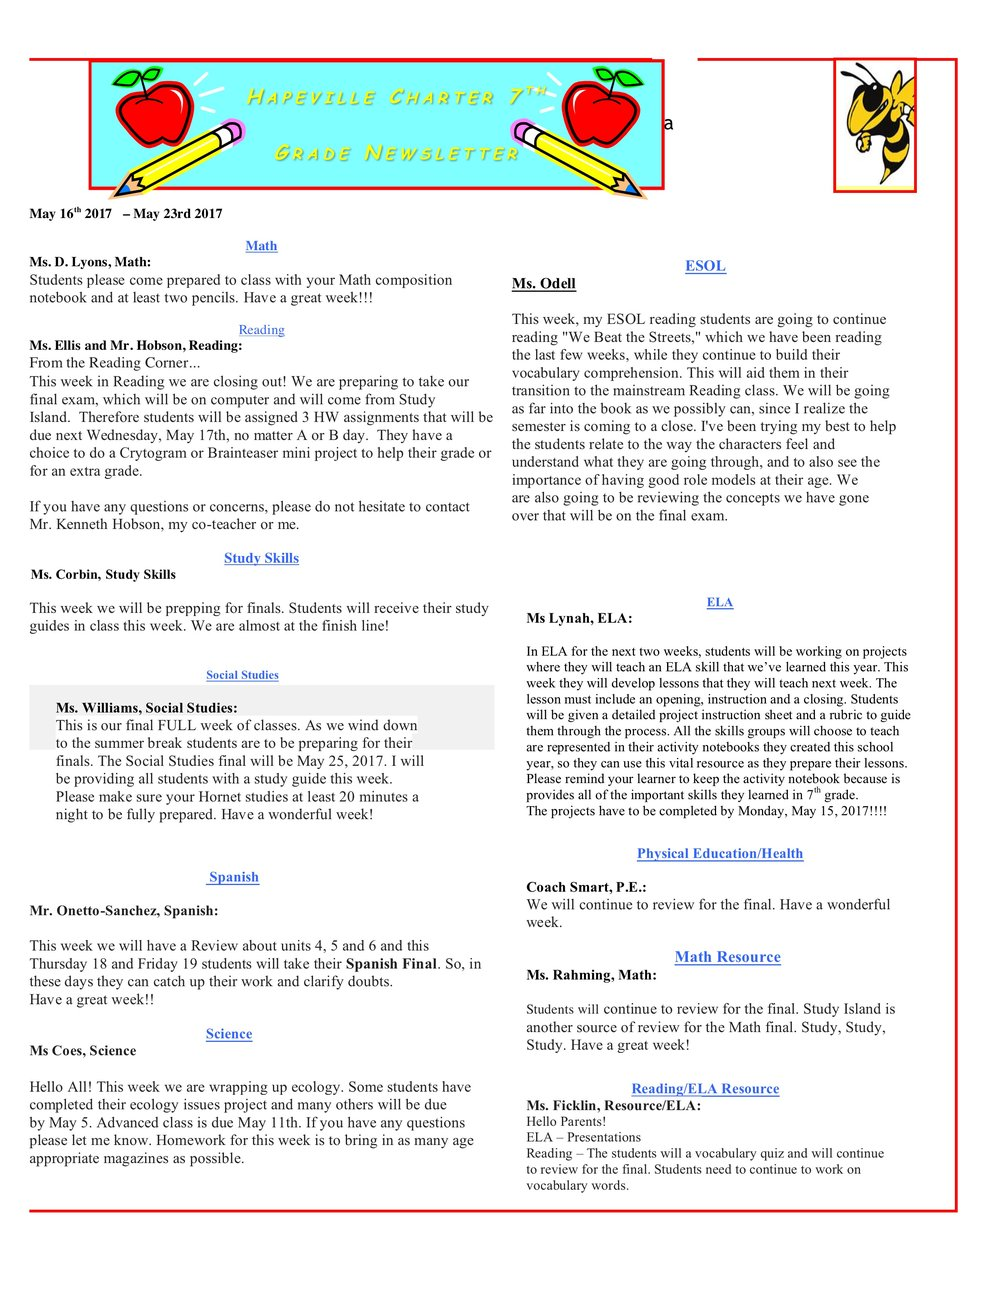 Newsletter Image7th Grade Newsletter 5-16-2017.jpeg